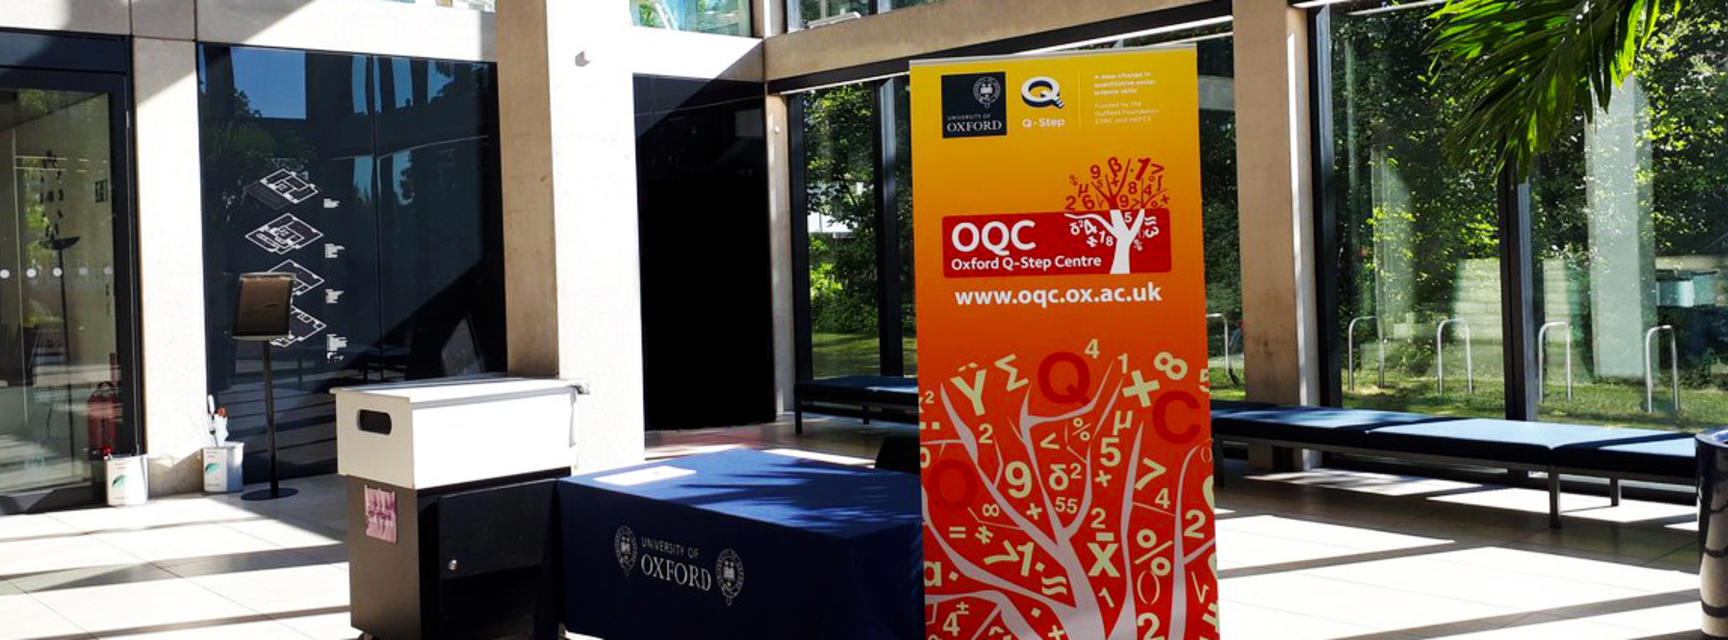 OQC event reception with banner, manor road building entrance hall